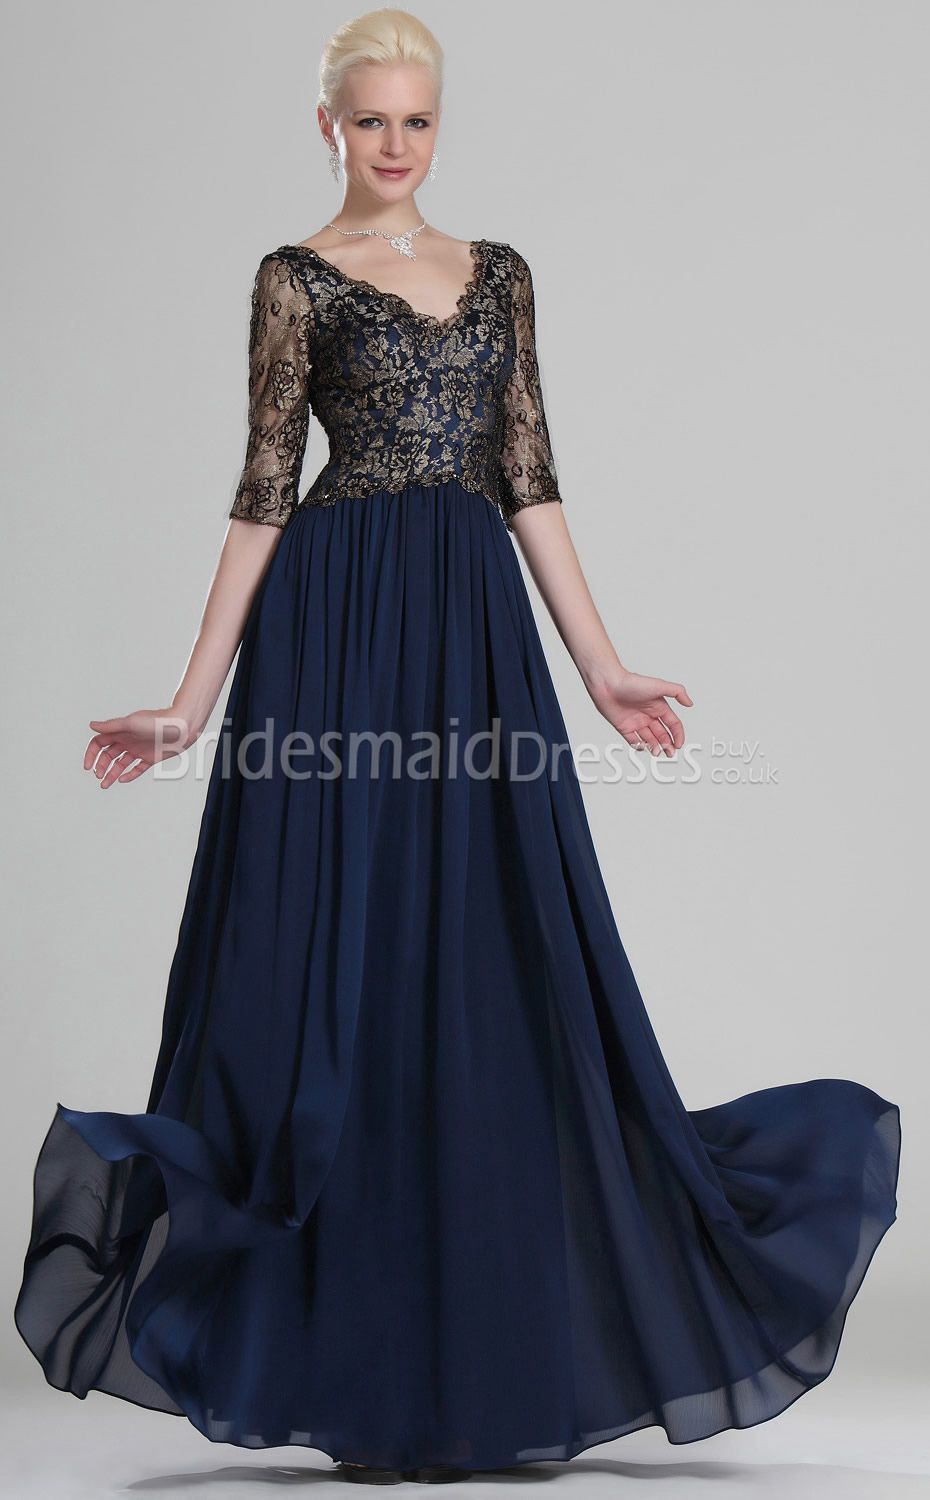 Aline vneck floorlength half sleeve ink blue lace bridesmaid